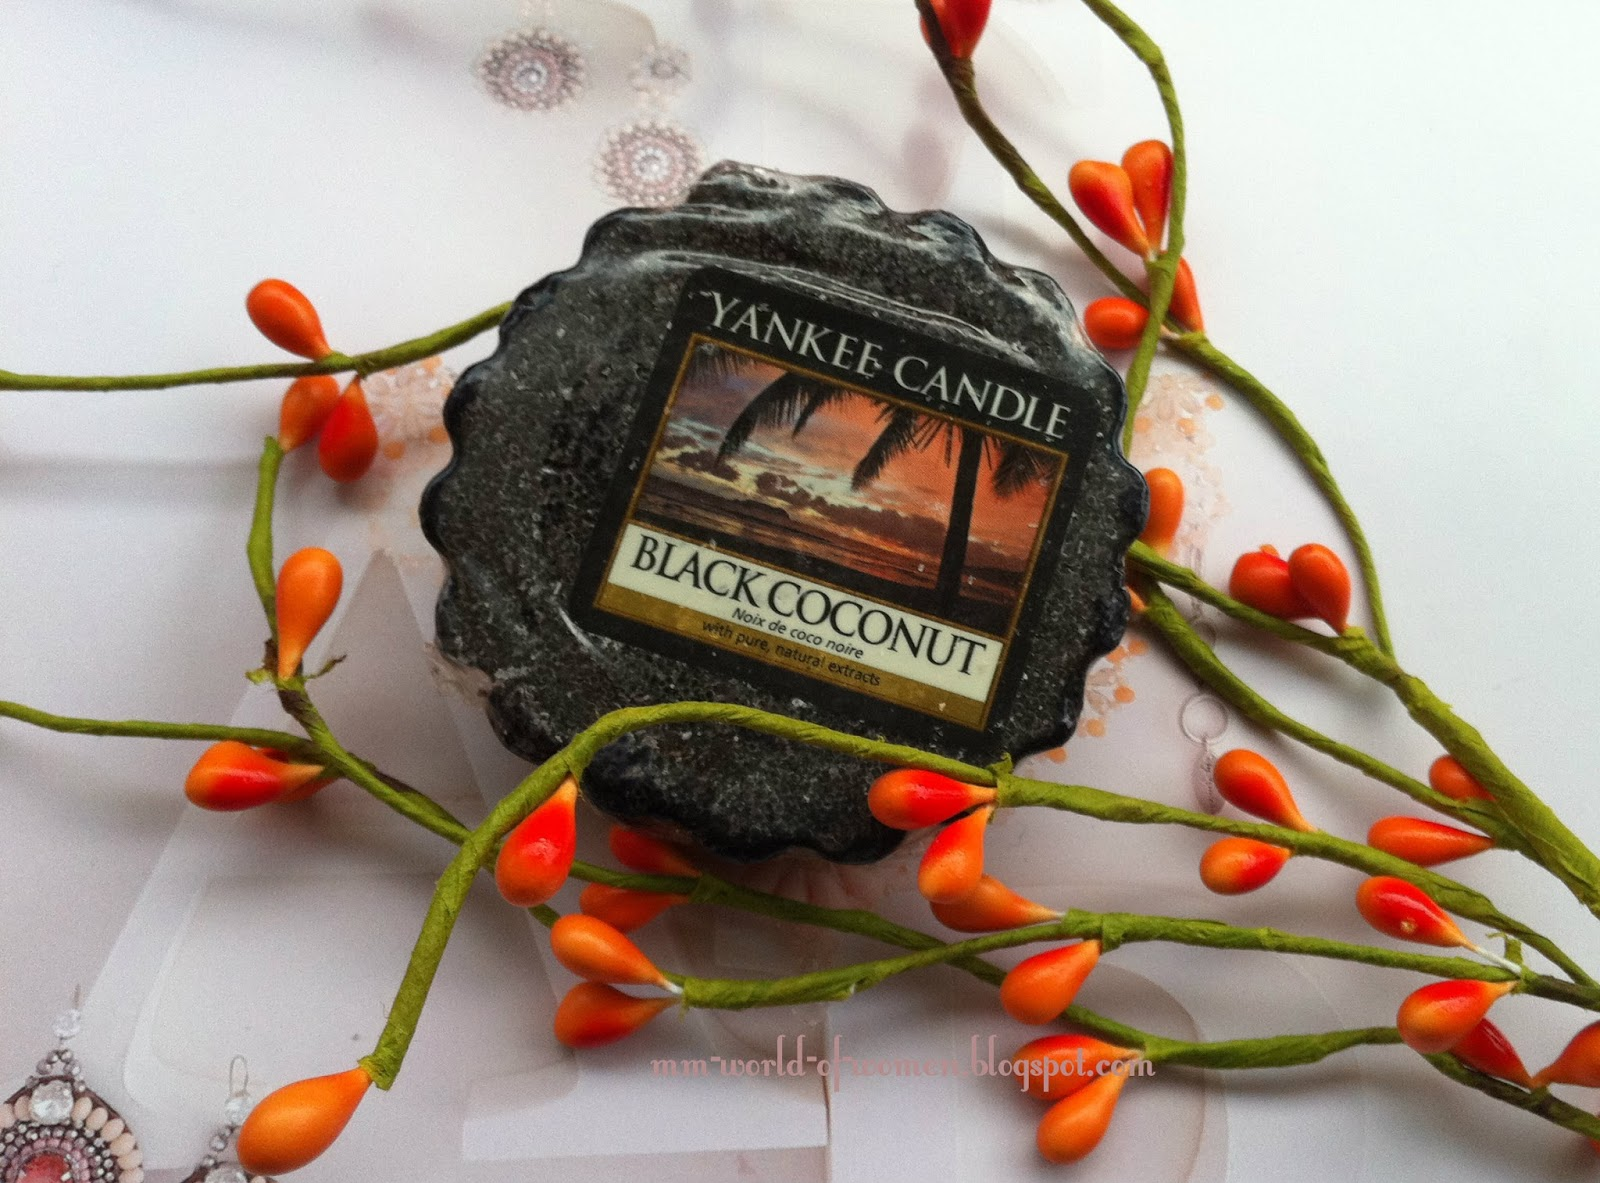 Black Coconut od Yankee Candle